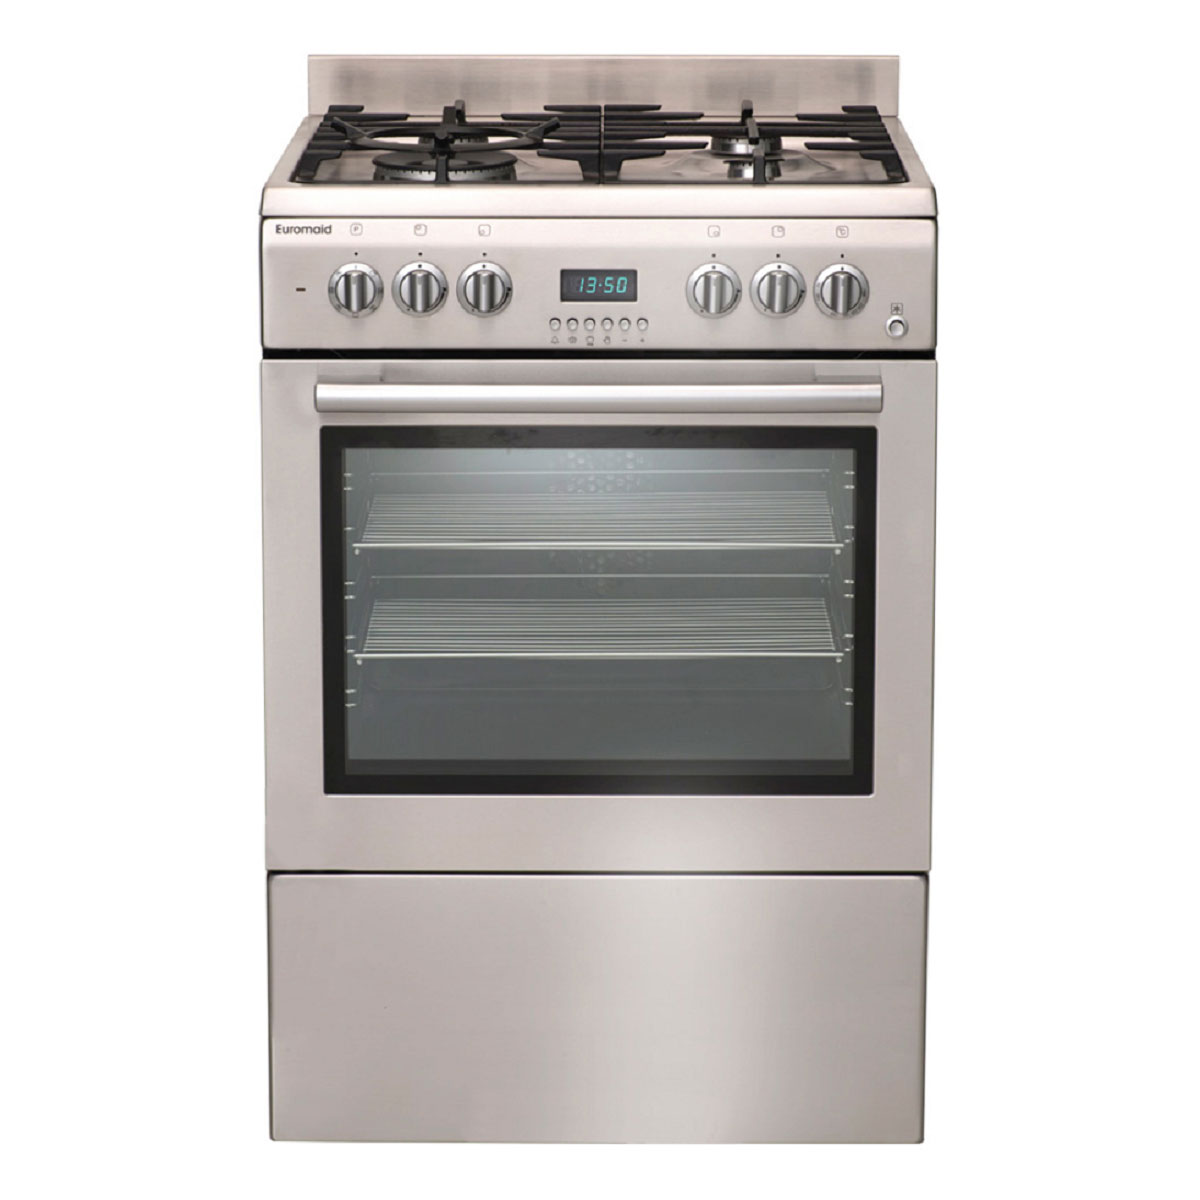 Euromaid GTEOS60 Freestanding Dual Fuel Oven/Stove